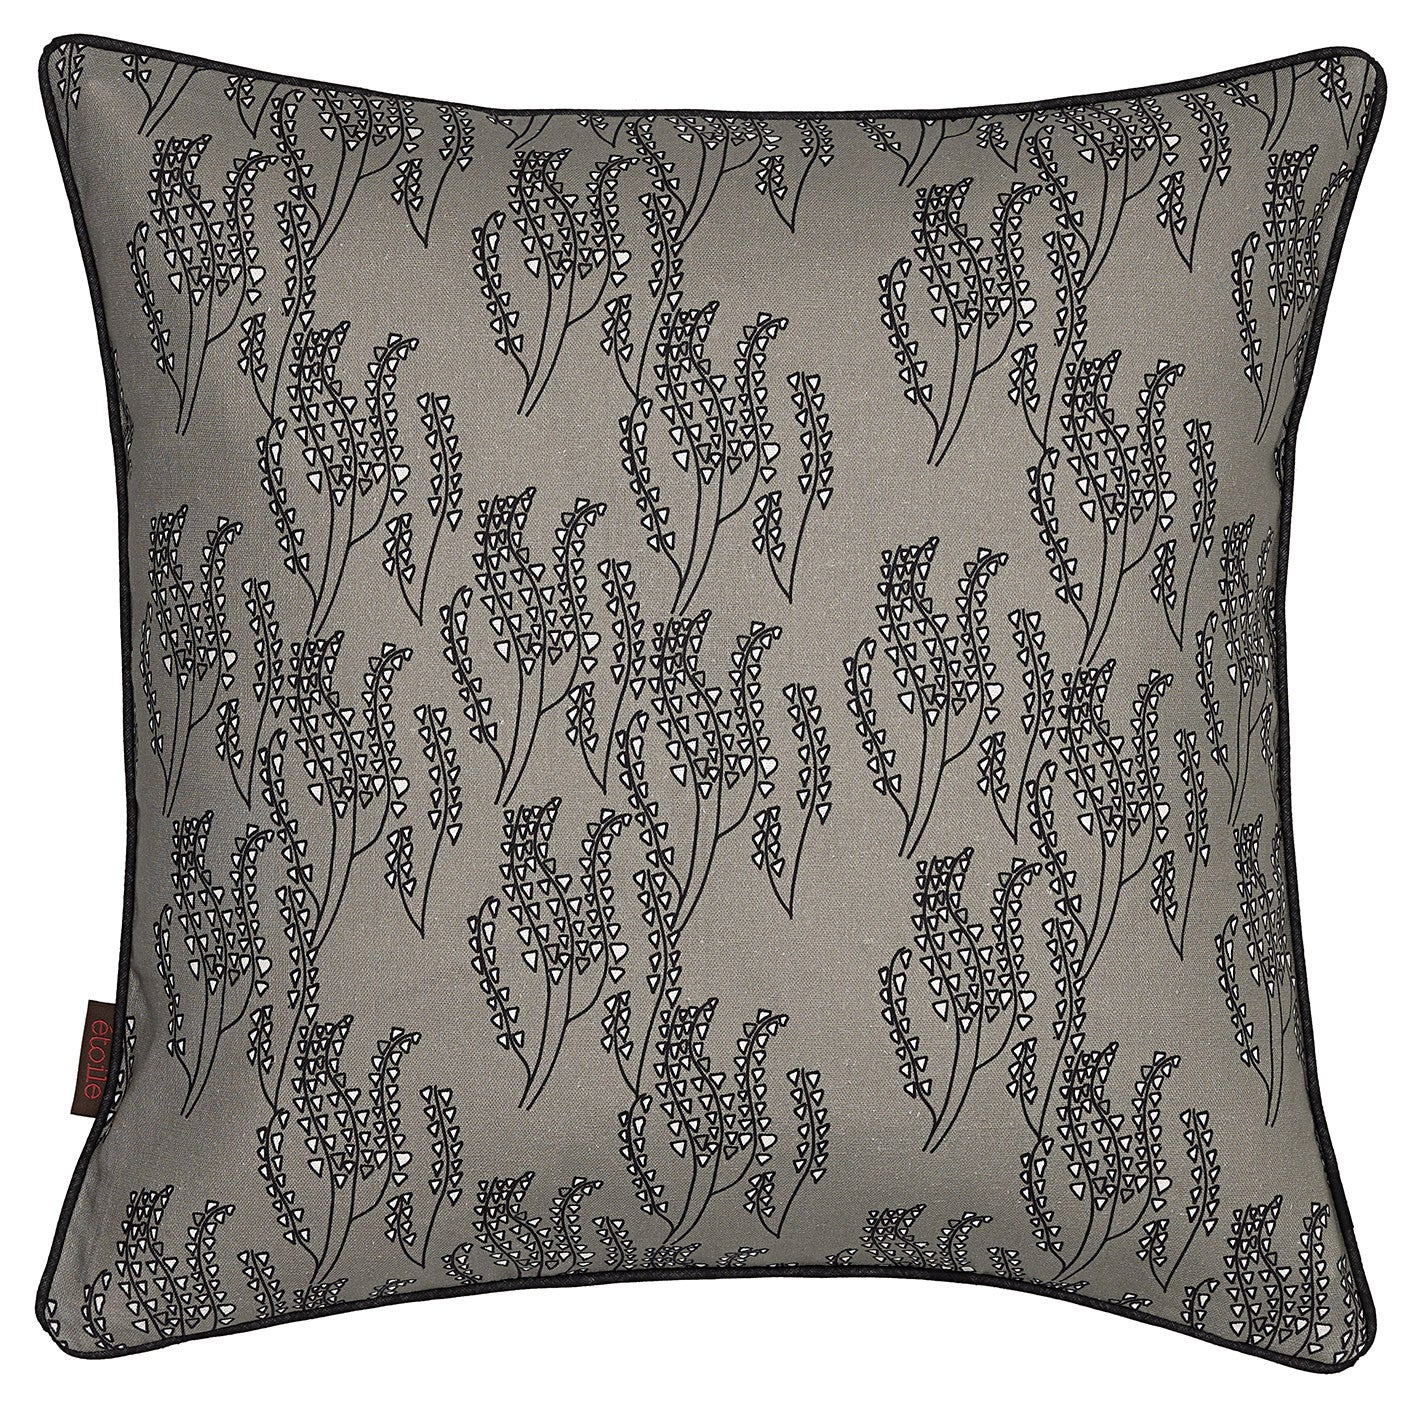 Maricopa Graphic Floral Pattern Cotton Linen Pillow in Light Dove Gray